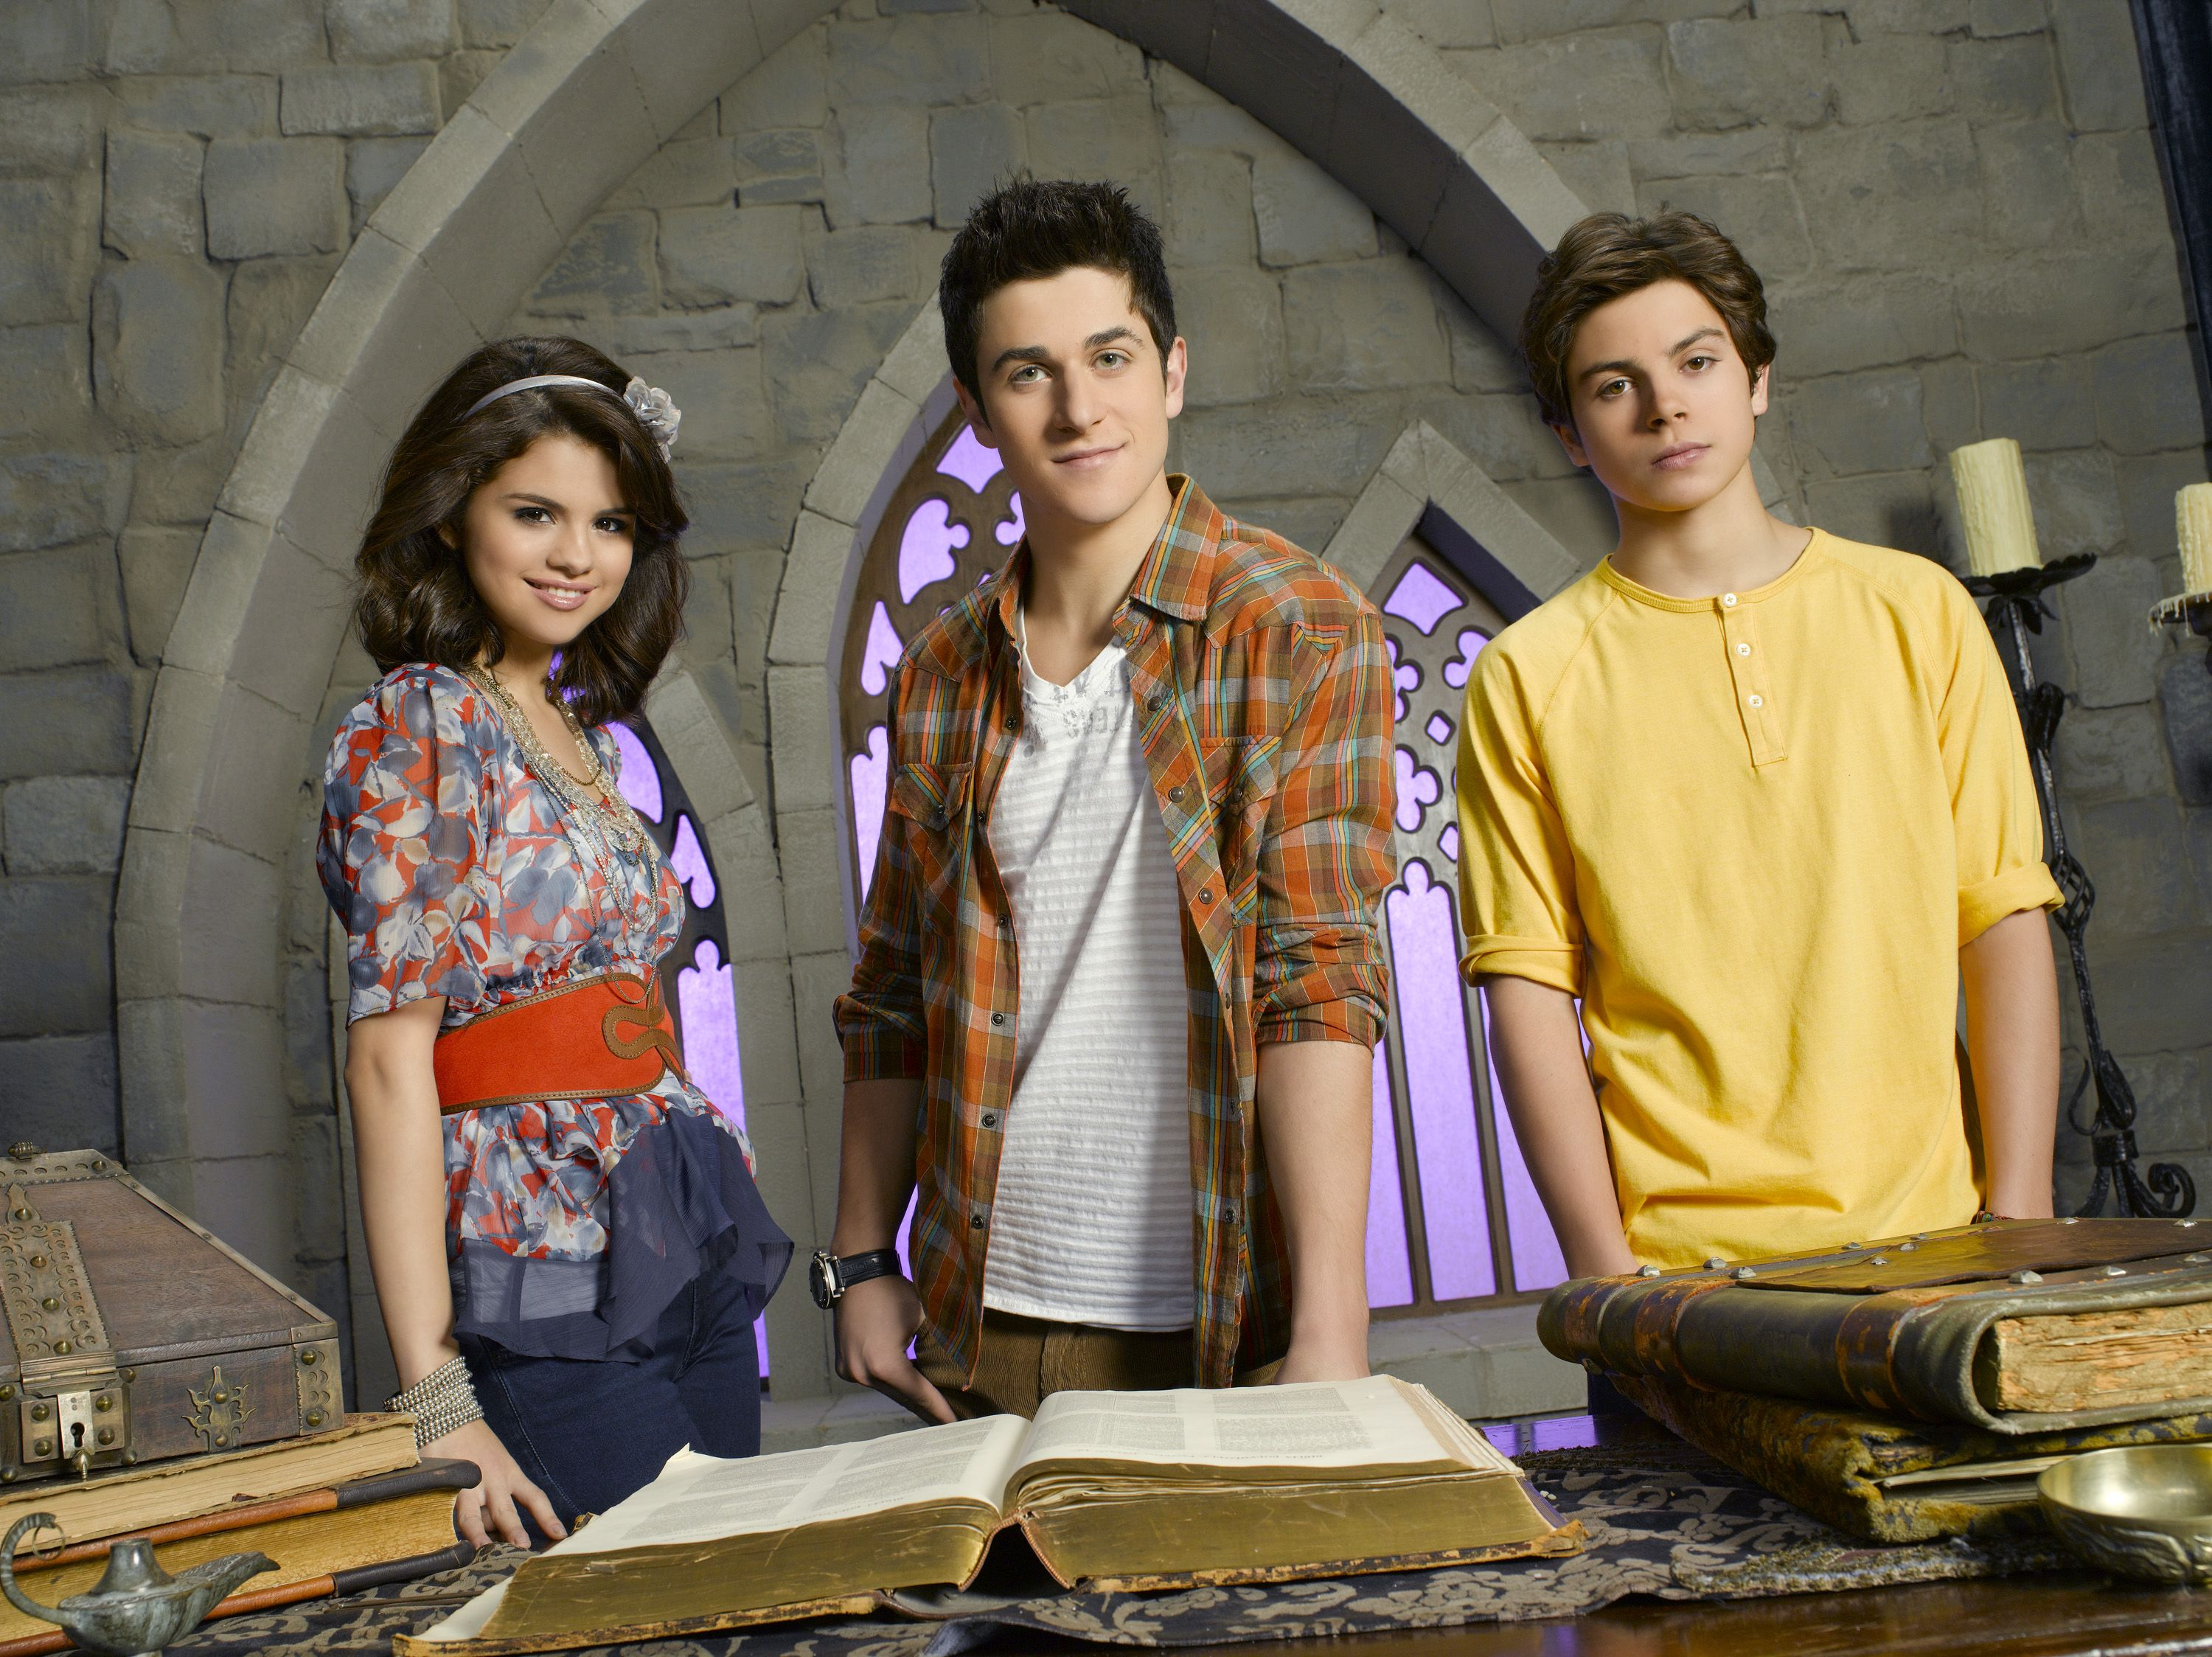 wizards of waverly place sequel and prequel rumors 10th